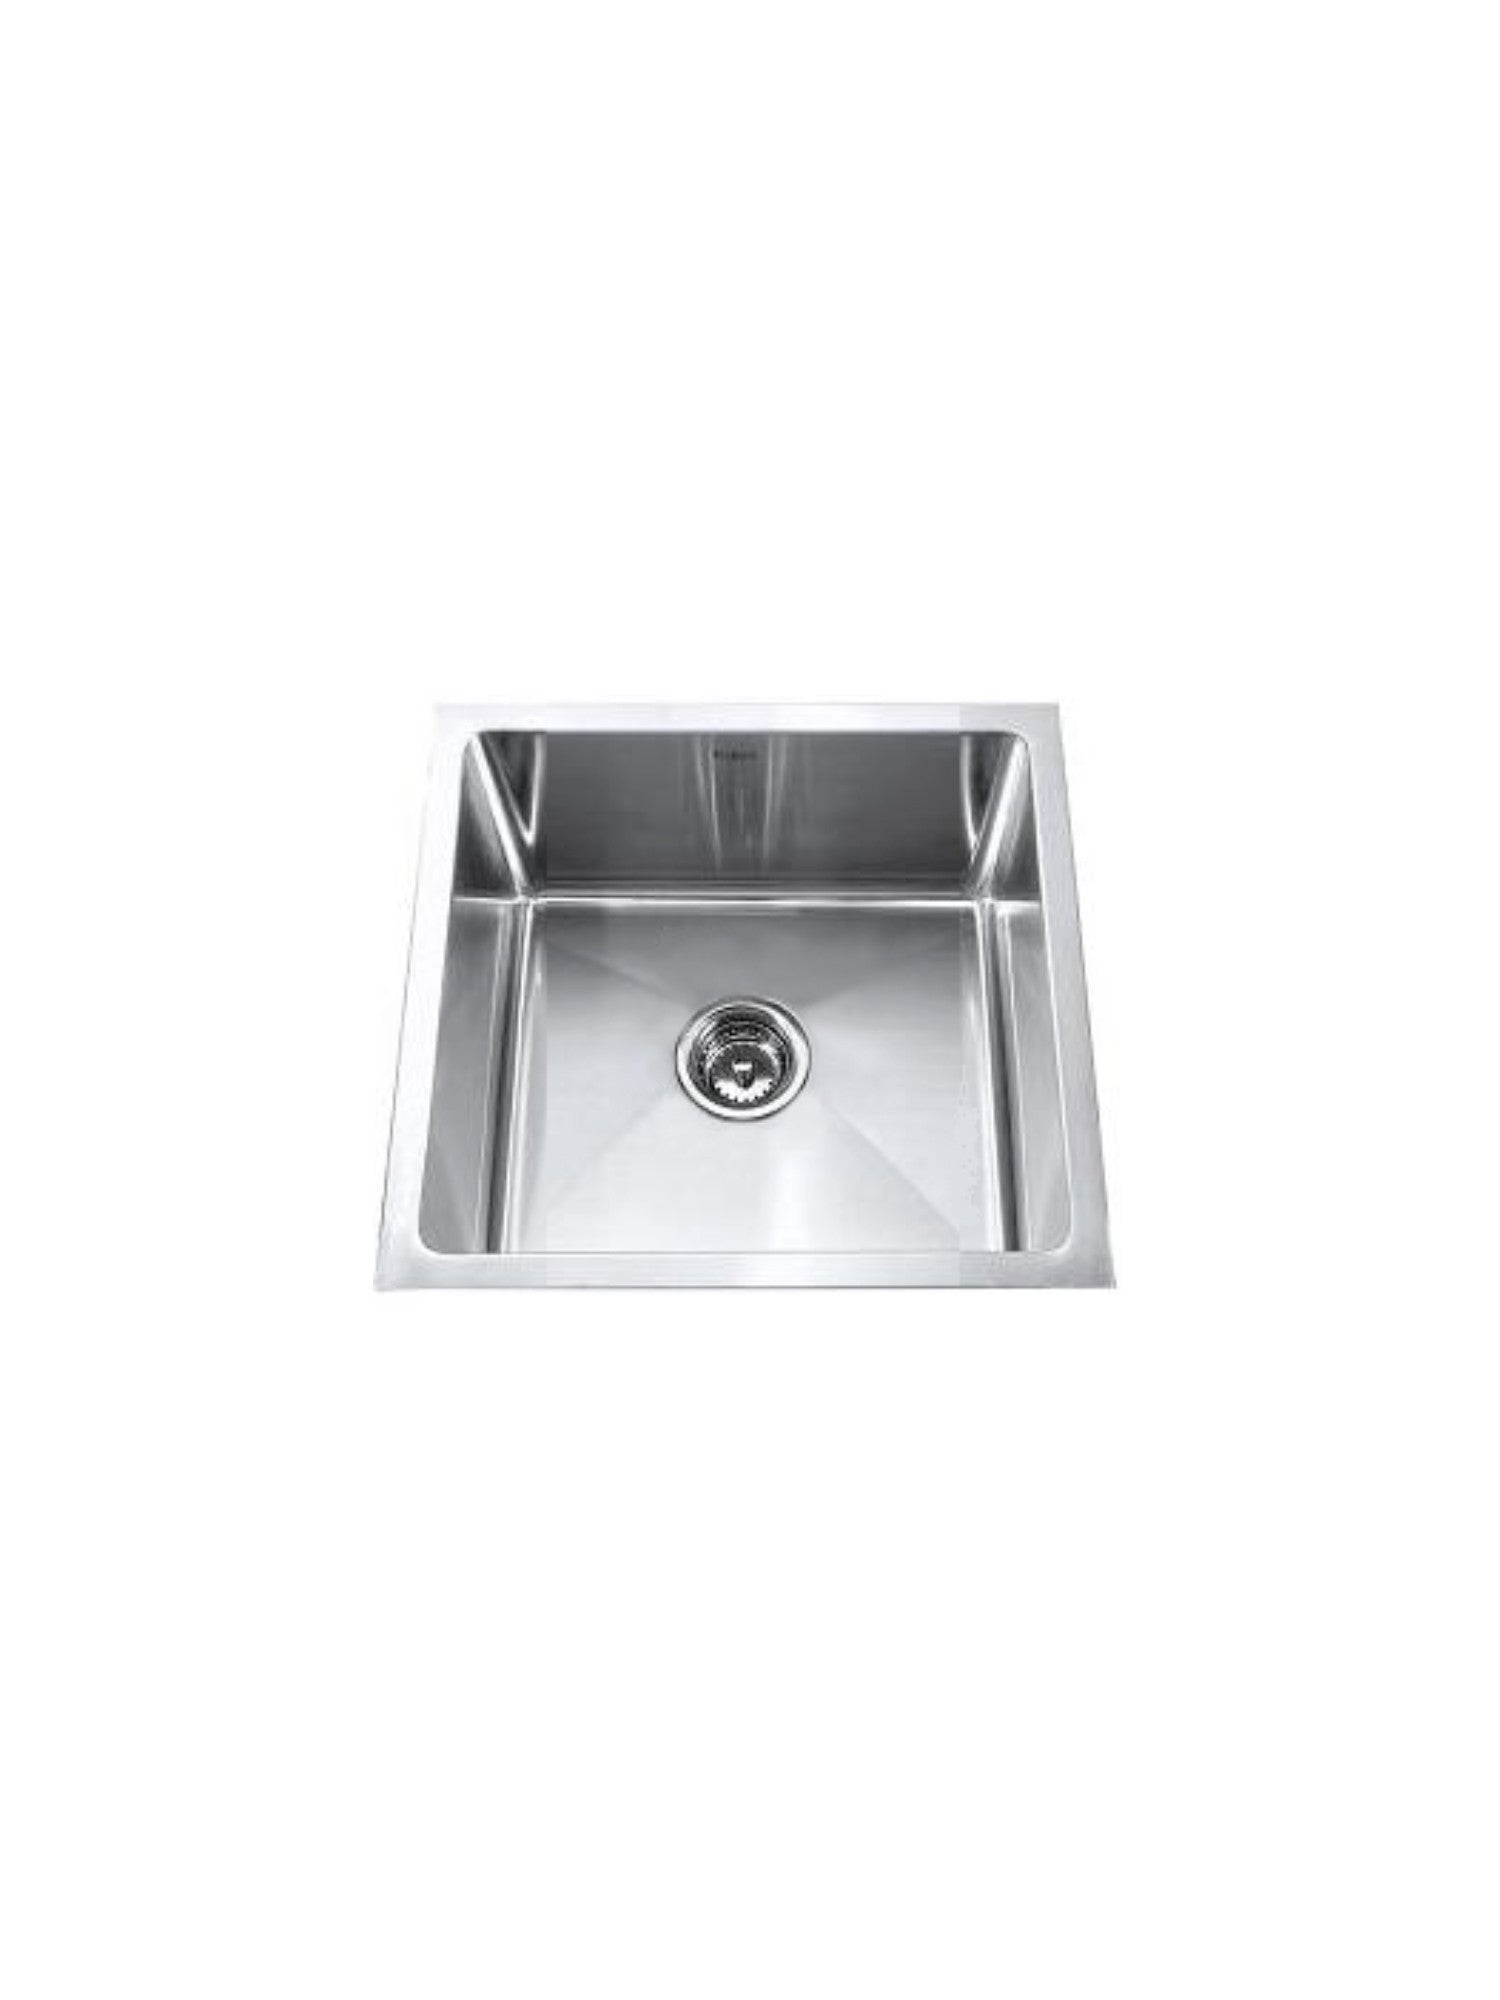 Single bowl kitchen sink sqm 390